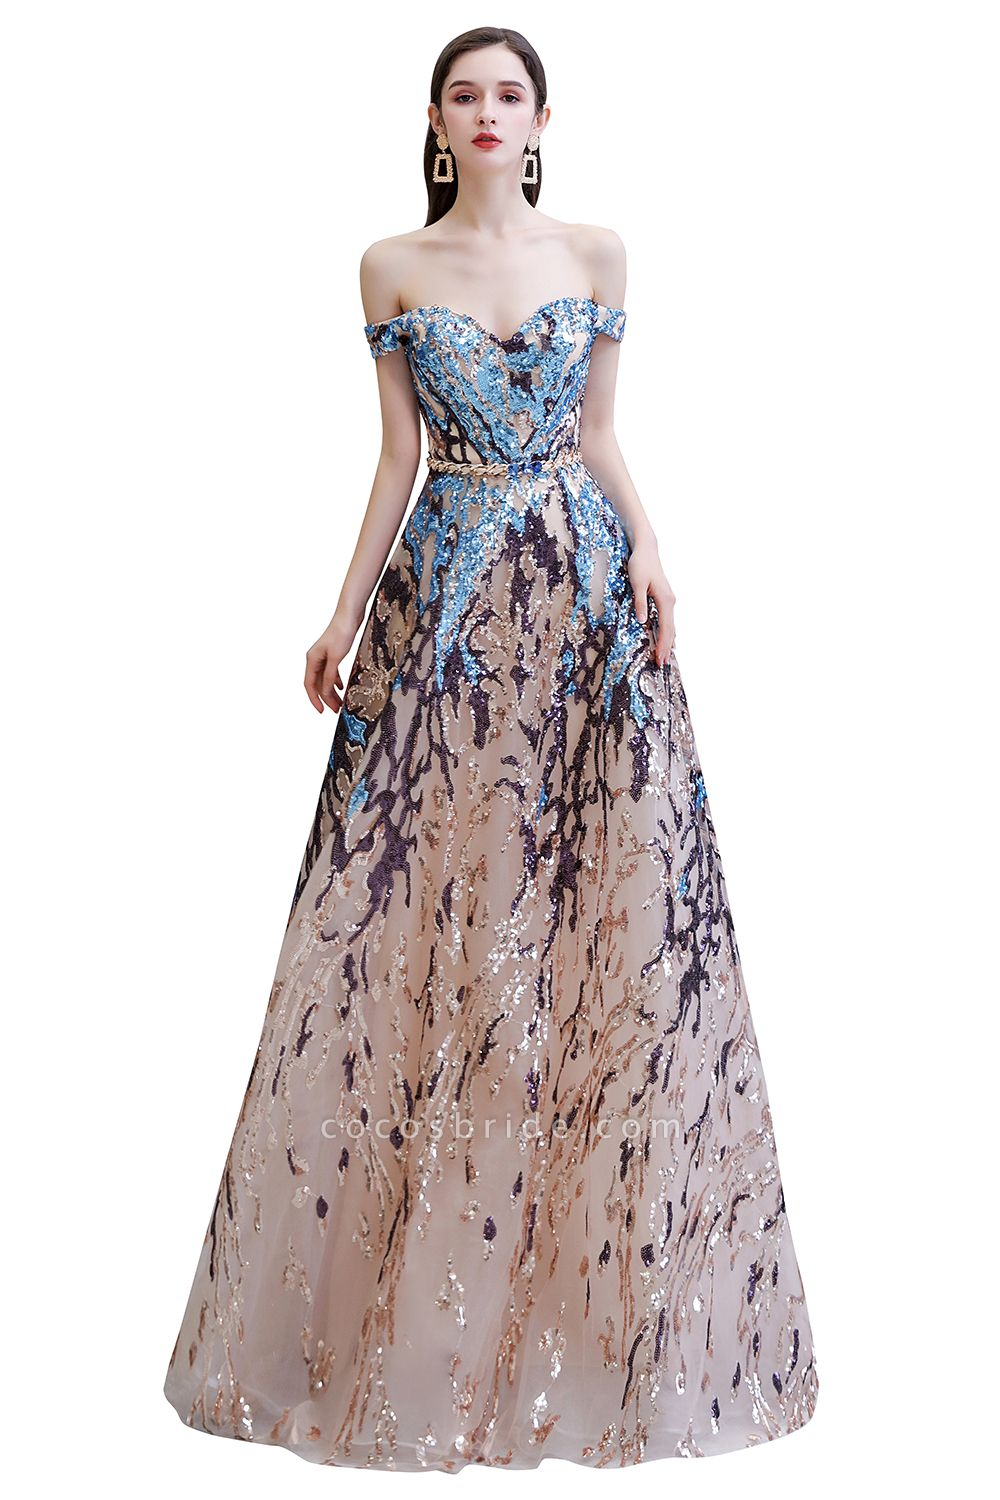 Off-the-Shoulder Sequins Long Multi-Color Prom Dress